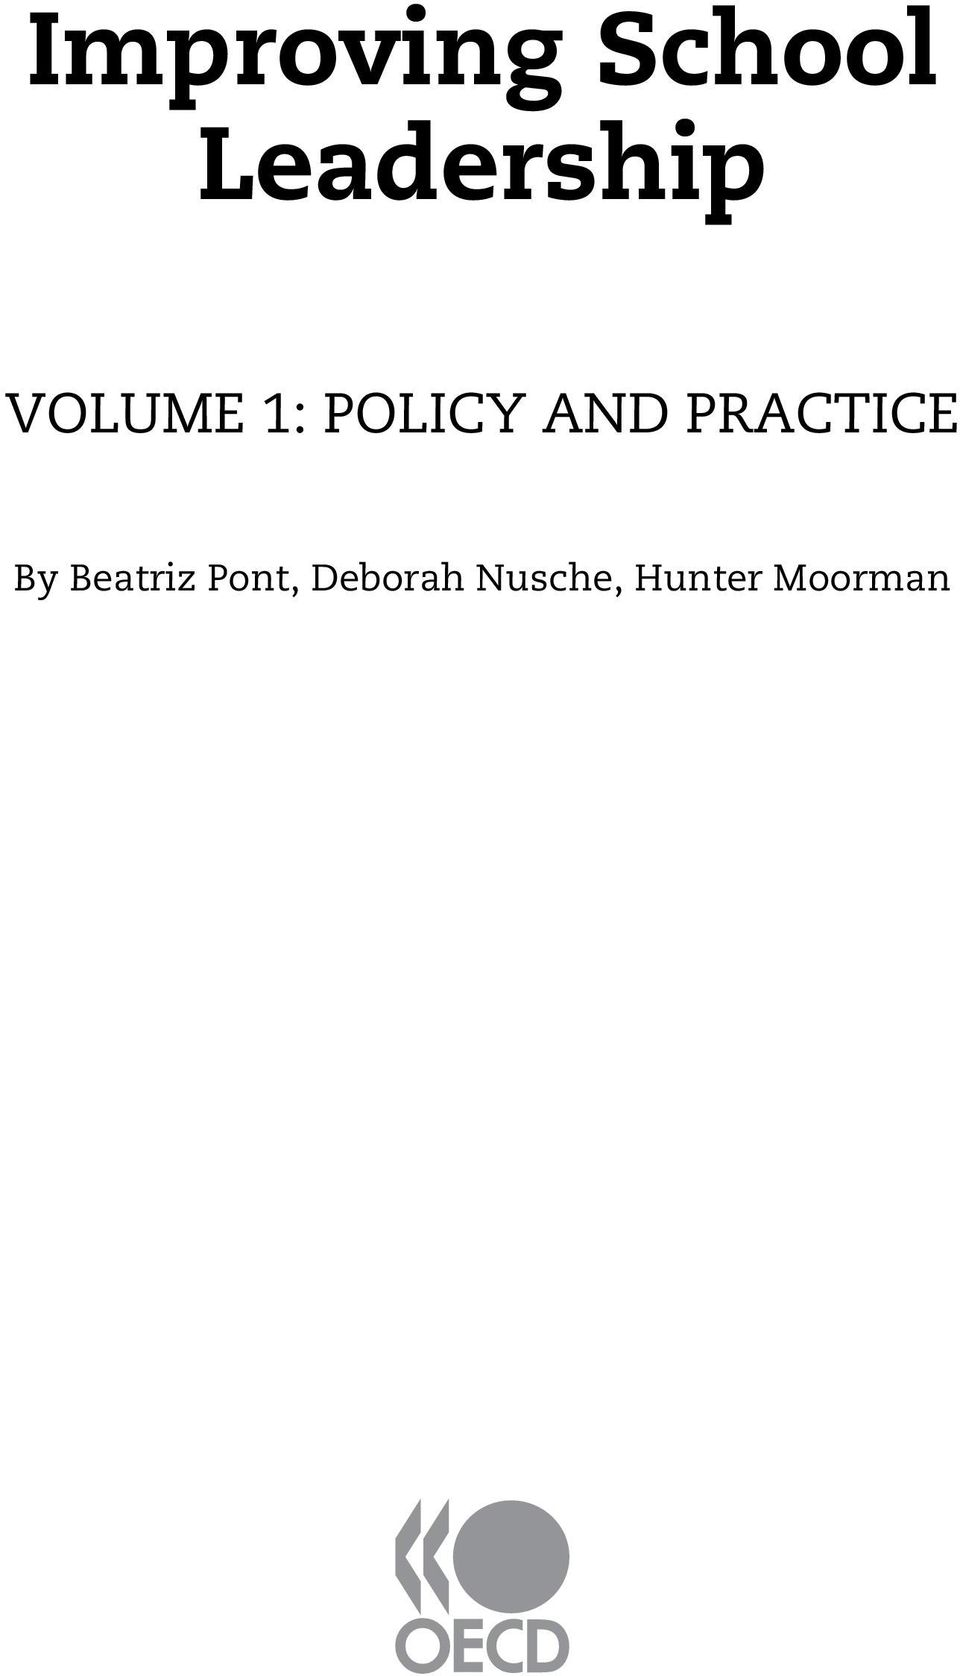 POLICY AND PRACTICE By